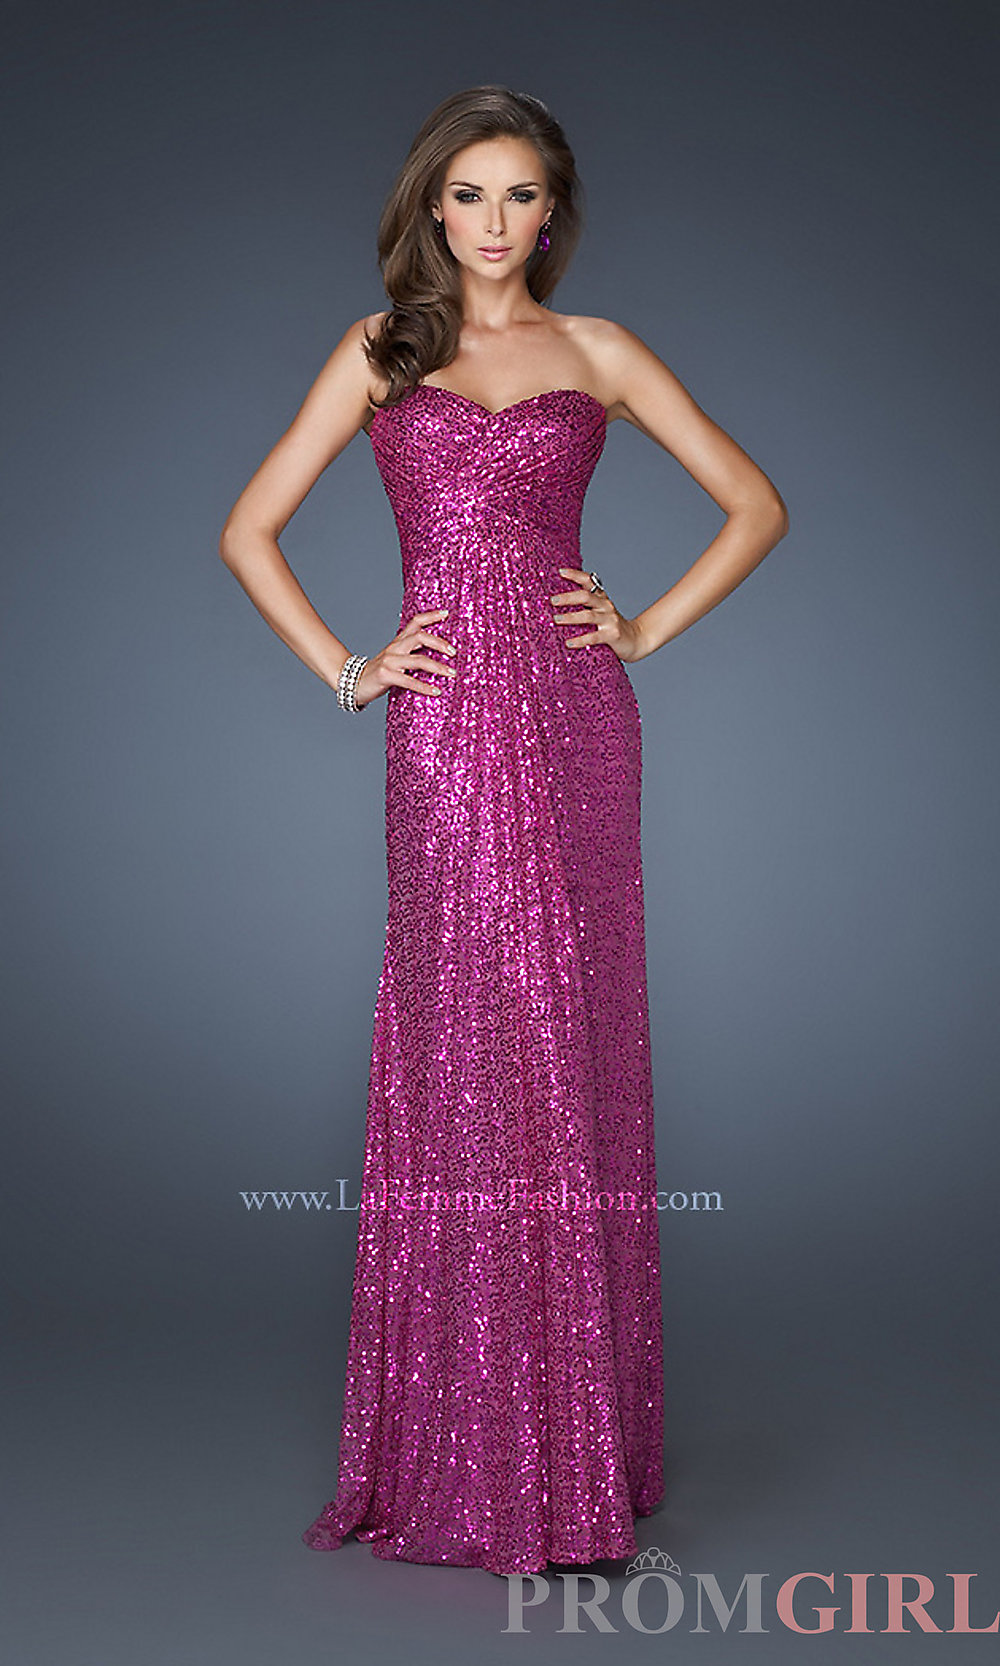 Latest Fancy Gowns, Prom and Cocktail dresses for Weddings and Parties 2014-2015 (9)